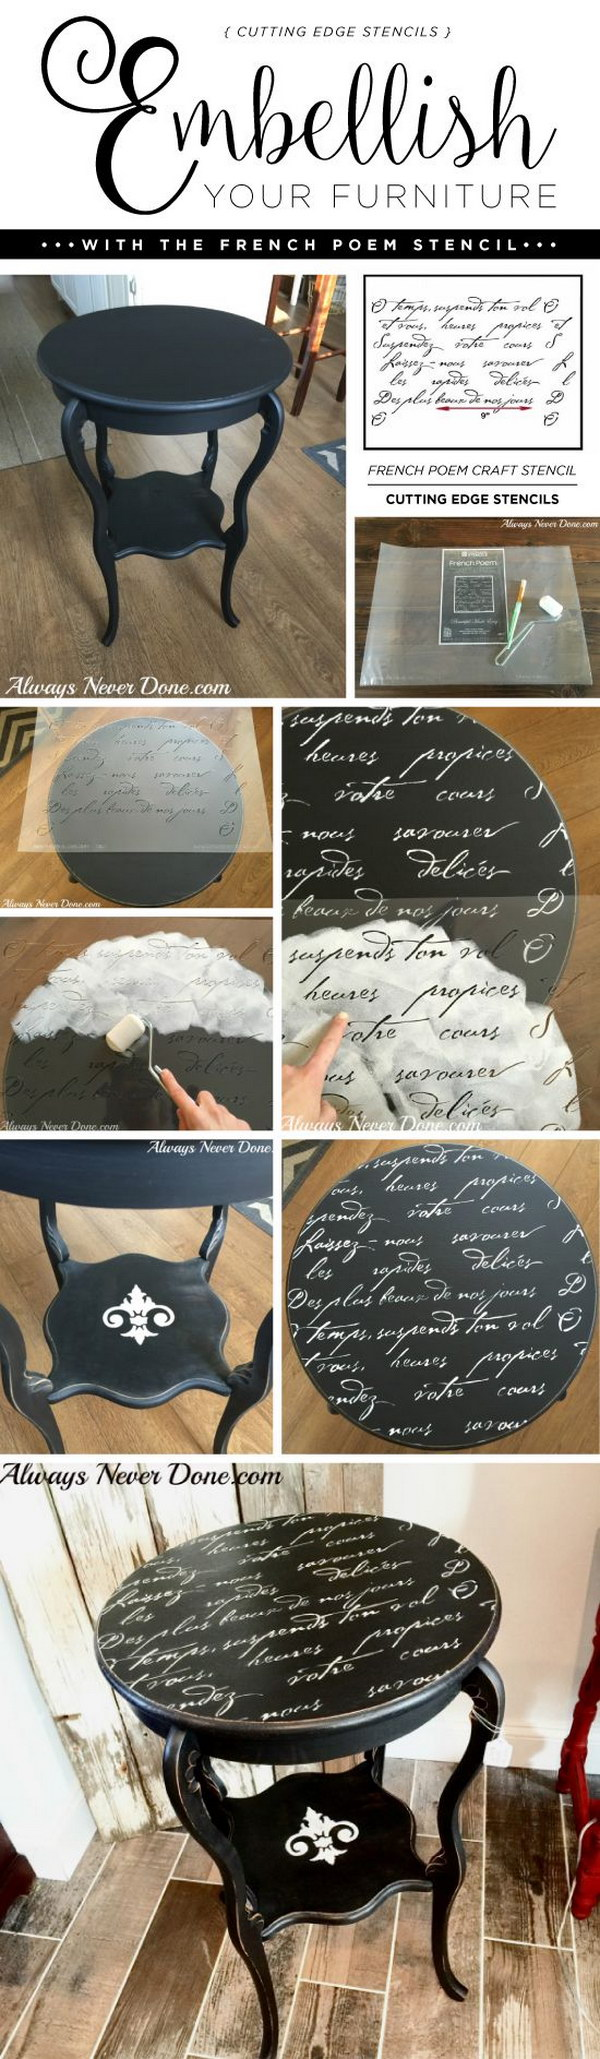 Embellish Your Furniture With the French Poem Stencil.